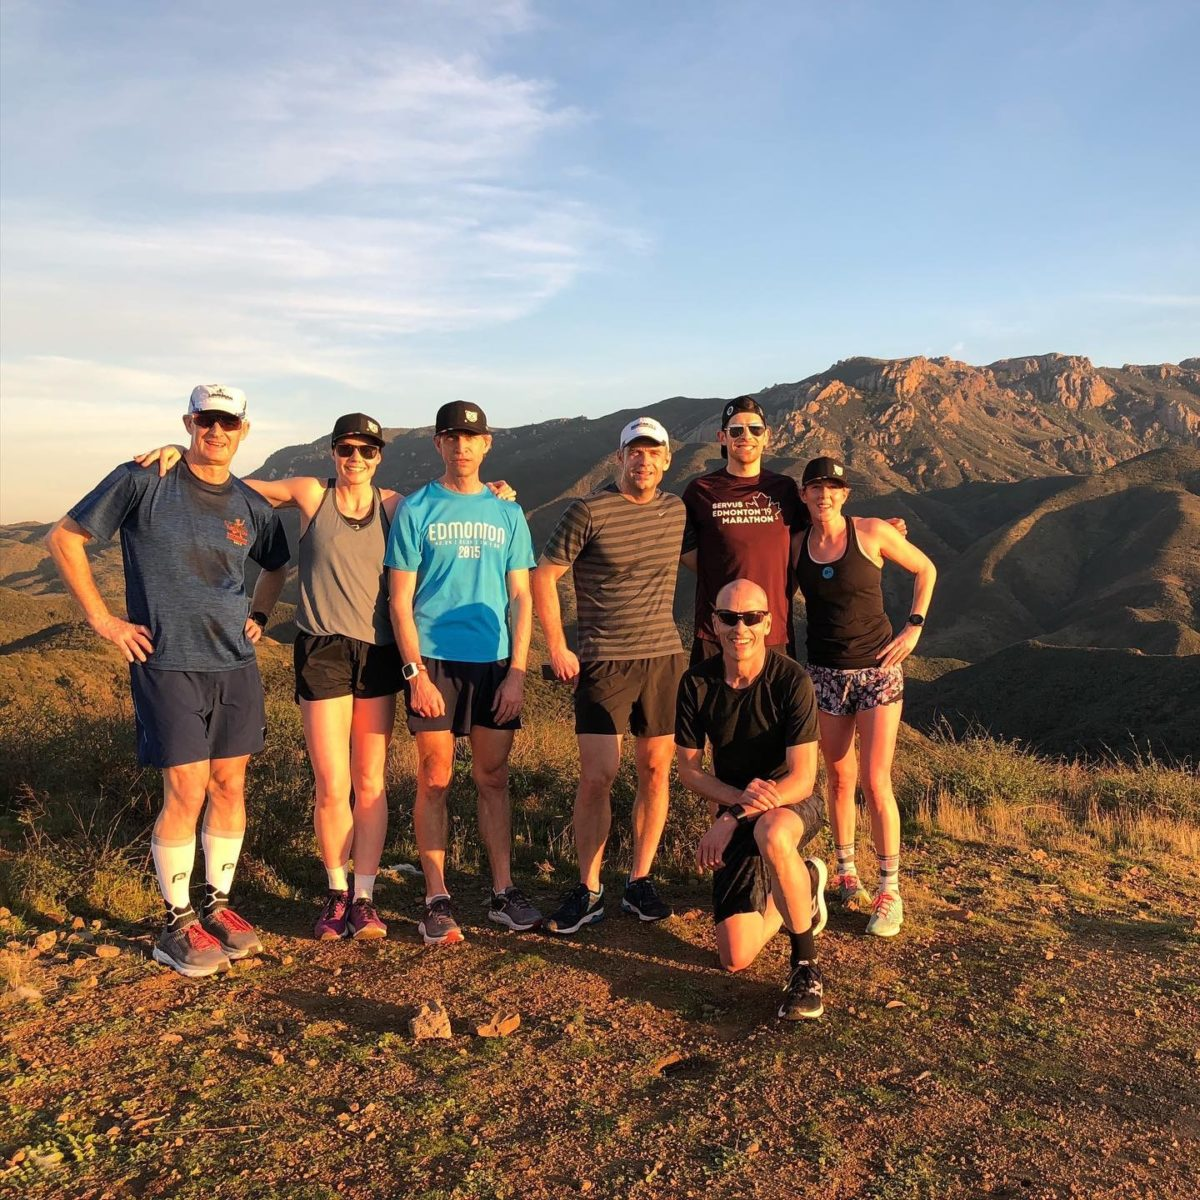 Runners in Santa Monica Mountains with Sun Setting during Vertical Camp